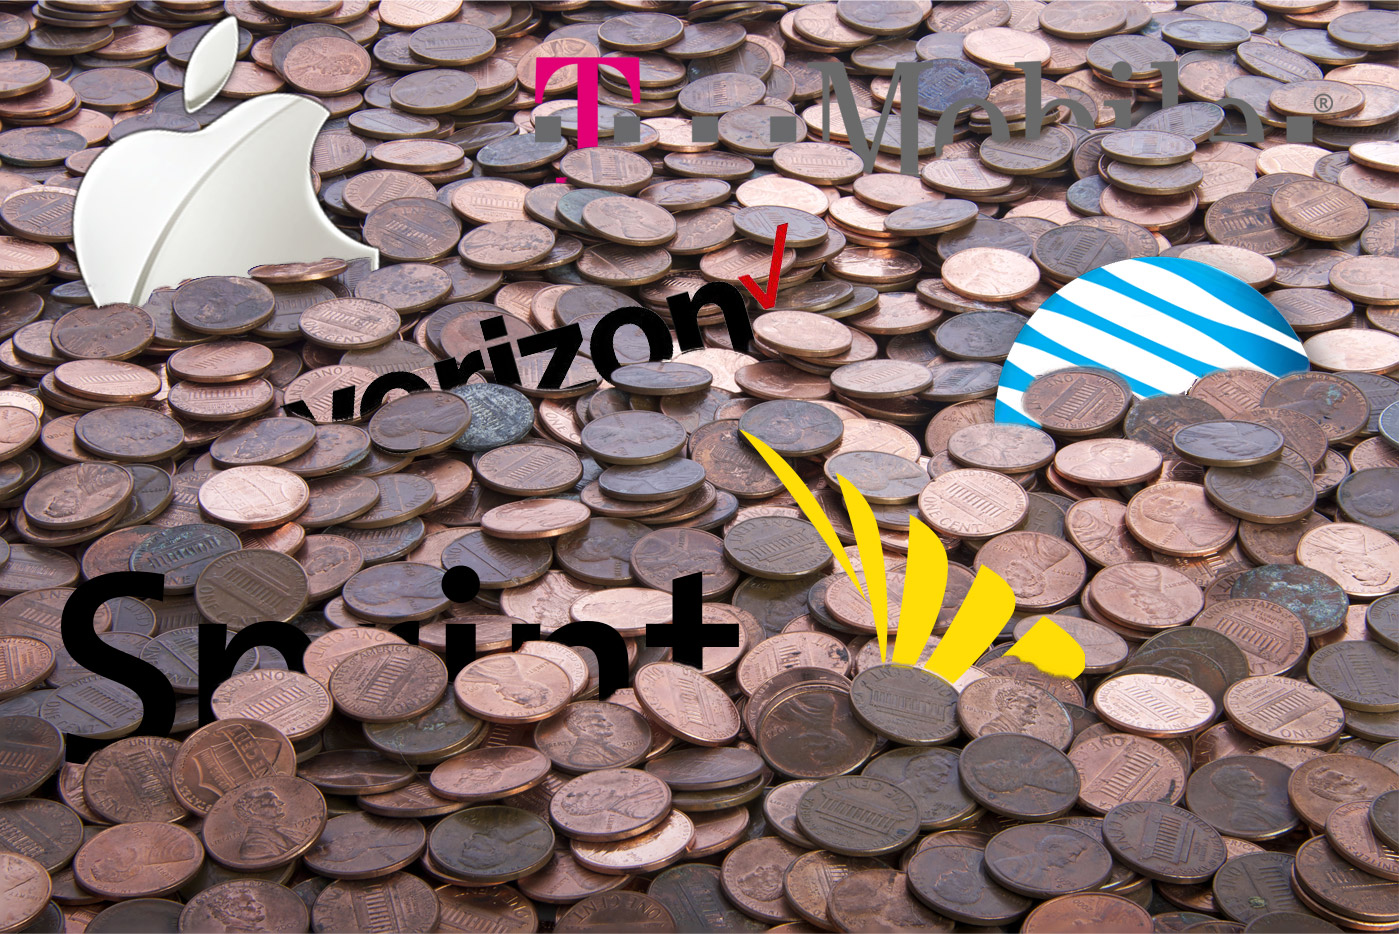 An ocean of pennies with logos of Apple, AT&T, Verizon, Sprint, and T-Mobile